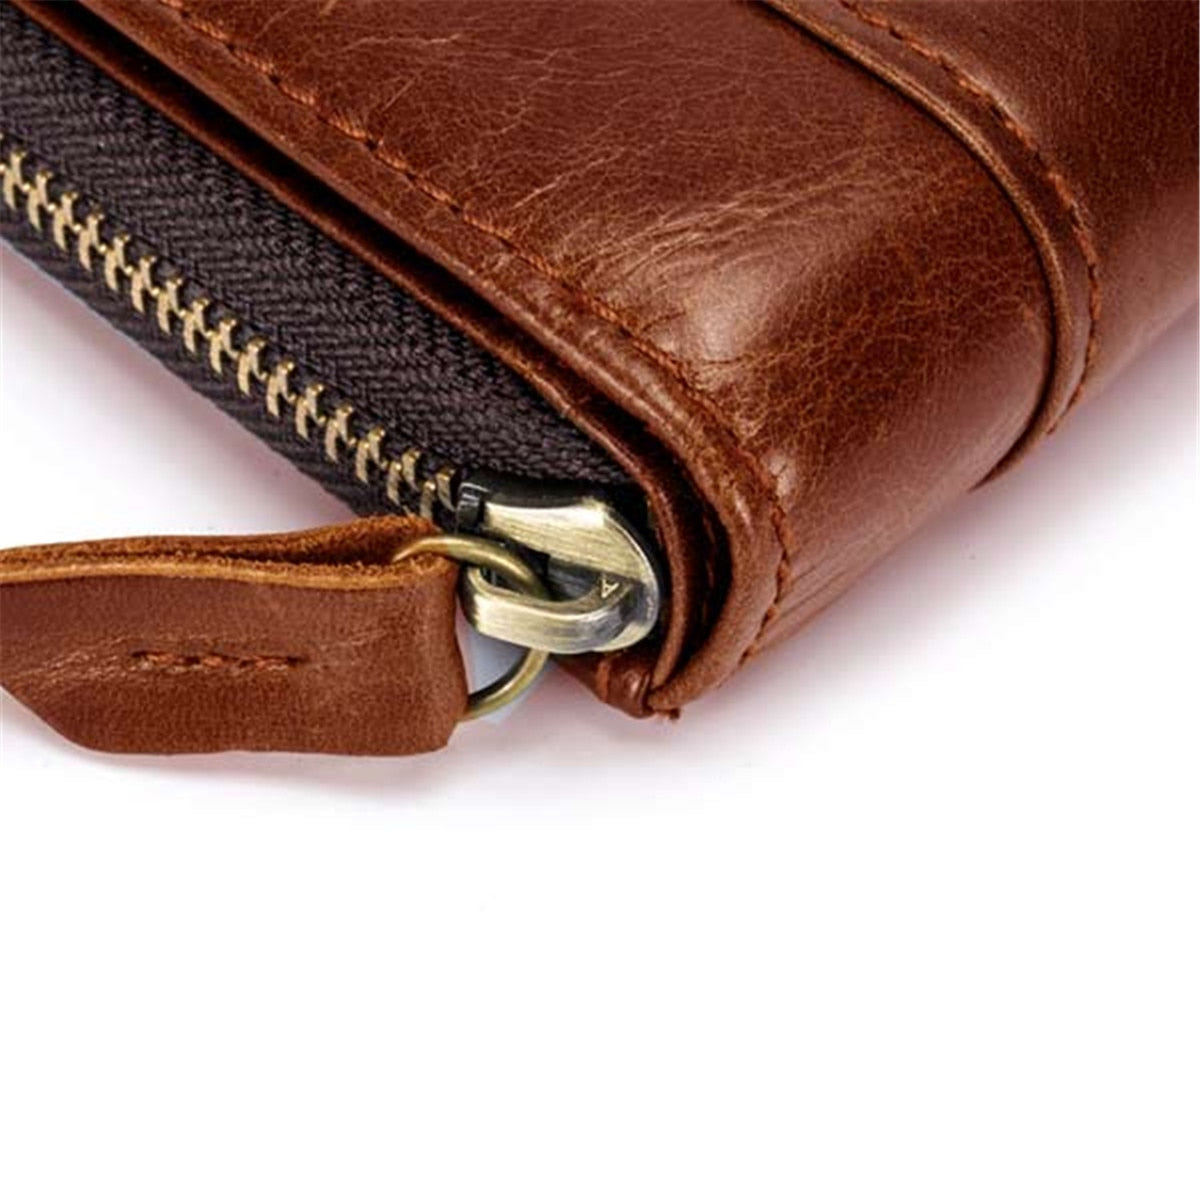 RFID Antimagnetic Vintage Genuine Leather Wallet For Men